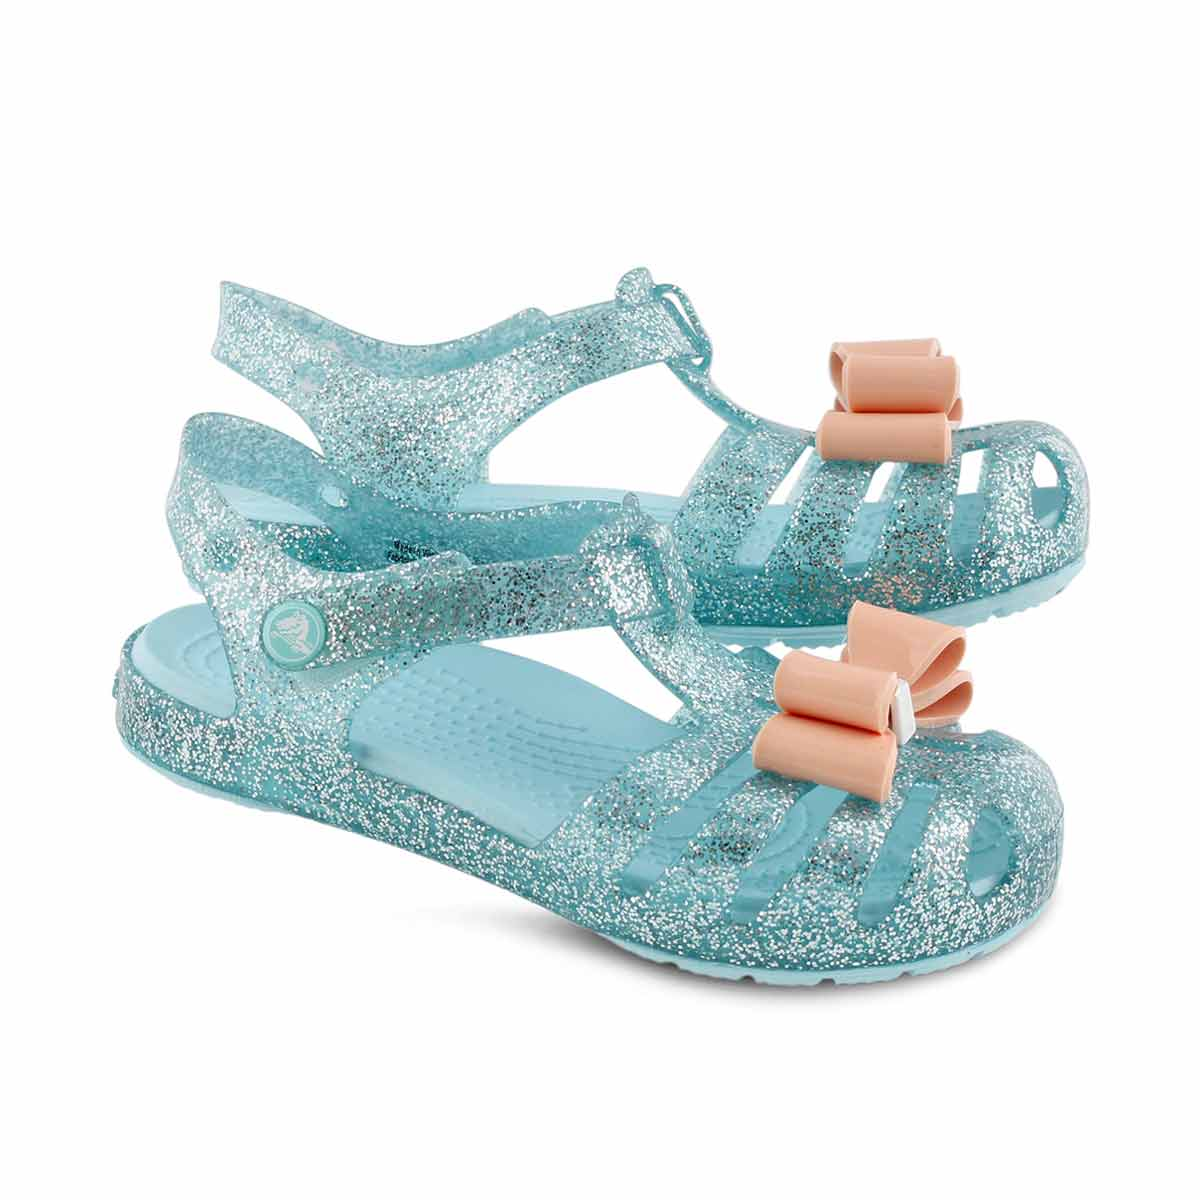 Grls Isabella Bow ice blue casual sandal